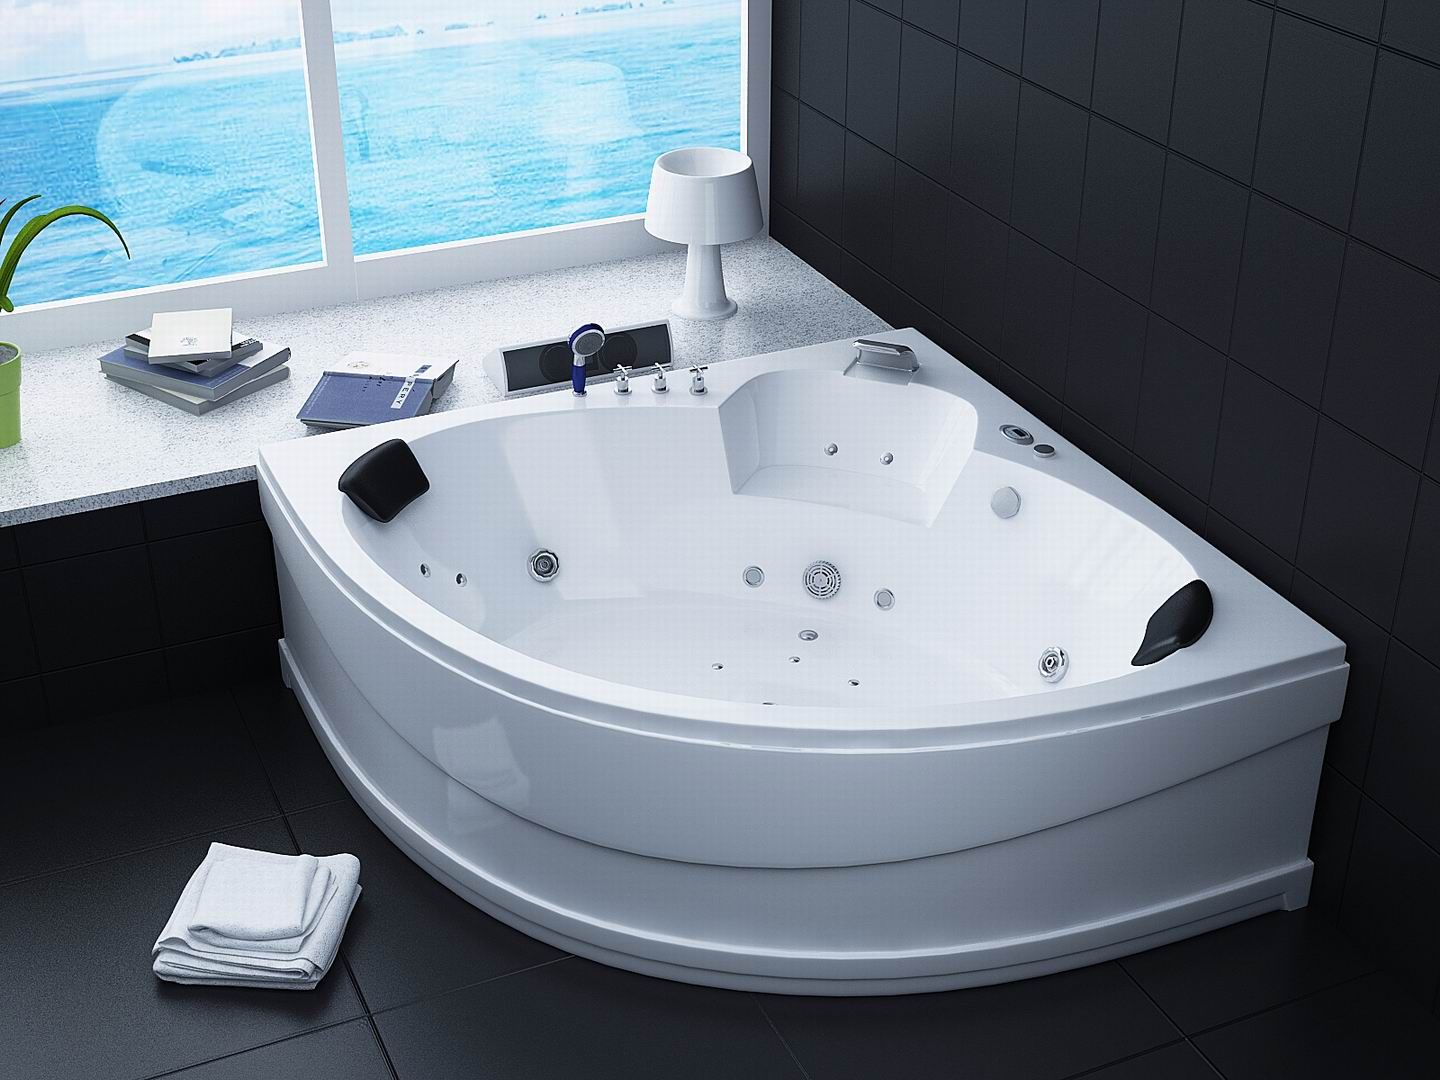 Bathtubs china jacuzzi bathtub mt nr1801 large image for Bathroom jacuzzi ideas